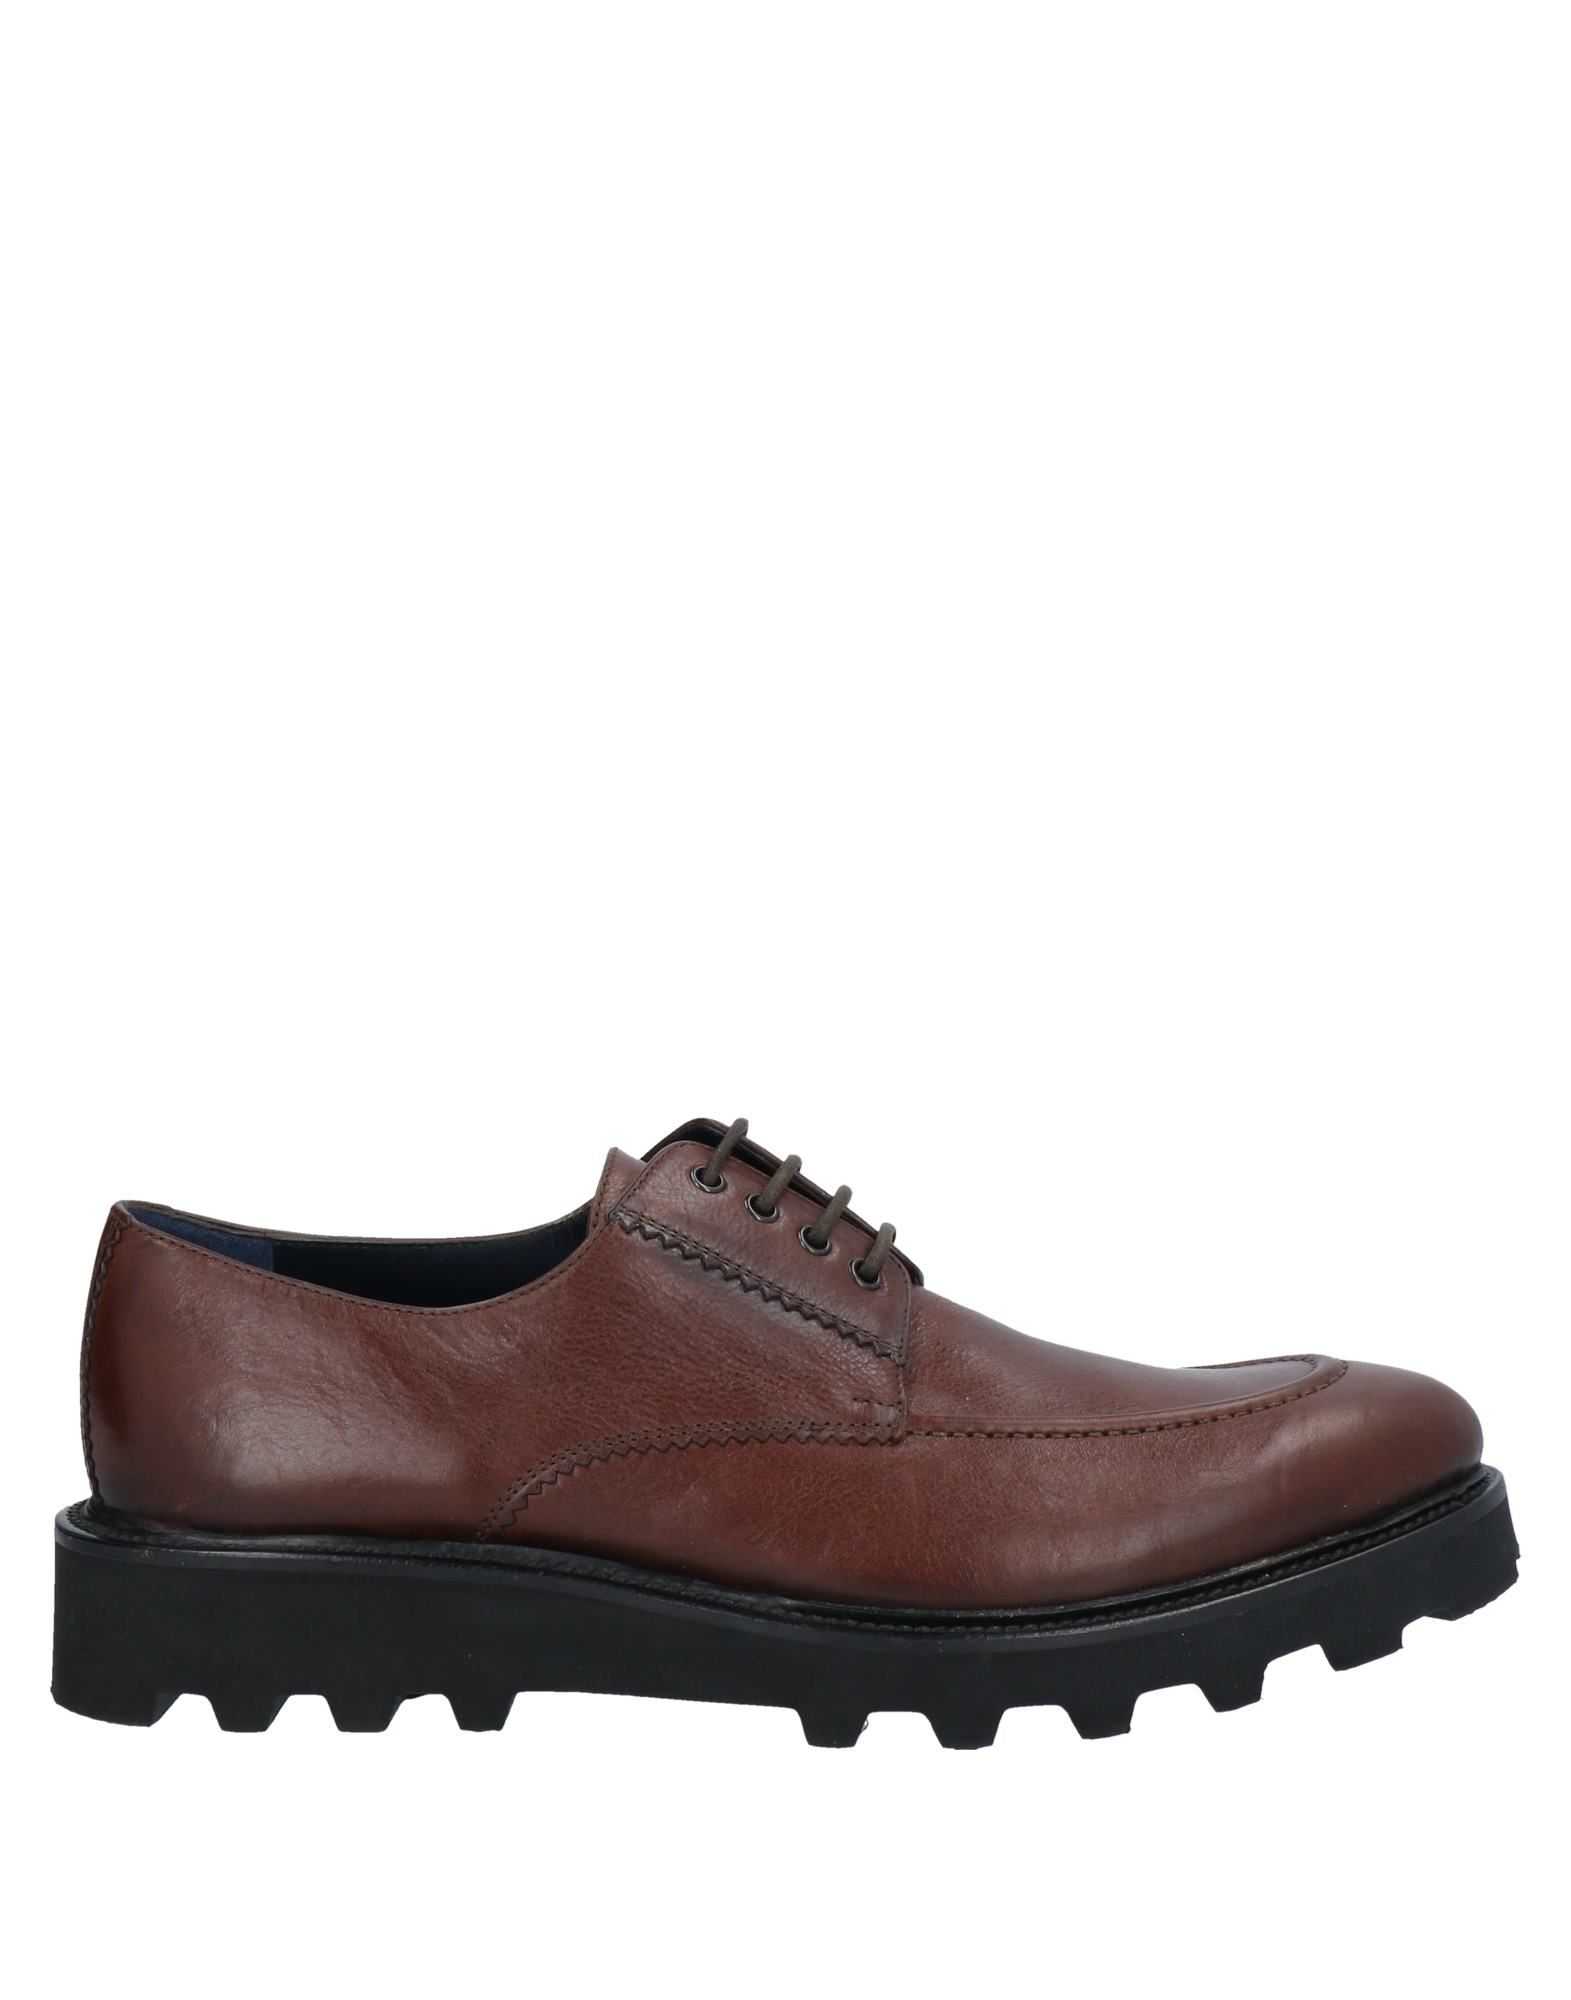 A.testoni Lace-up Shoes In Brown